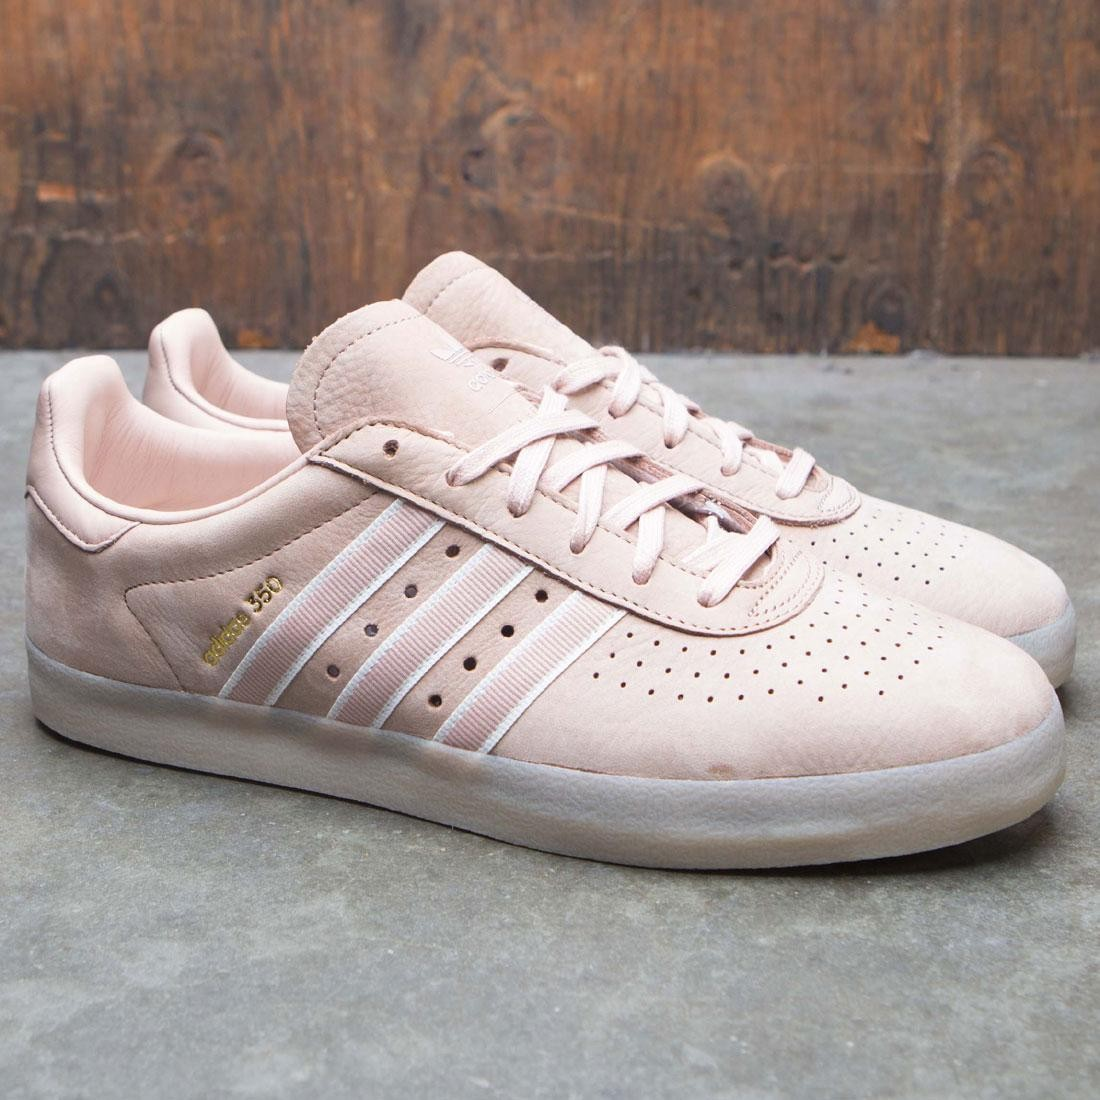 check out 5ba4f cf07e ... new concept 6676a 05aa2 Adidas Men Oyster Holdings Adidas 350 (pink ash  pearl chalk white ...